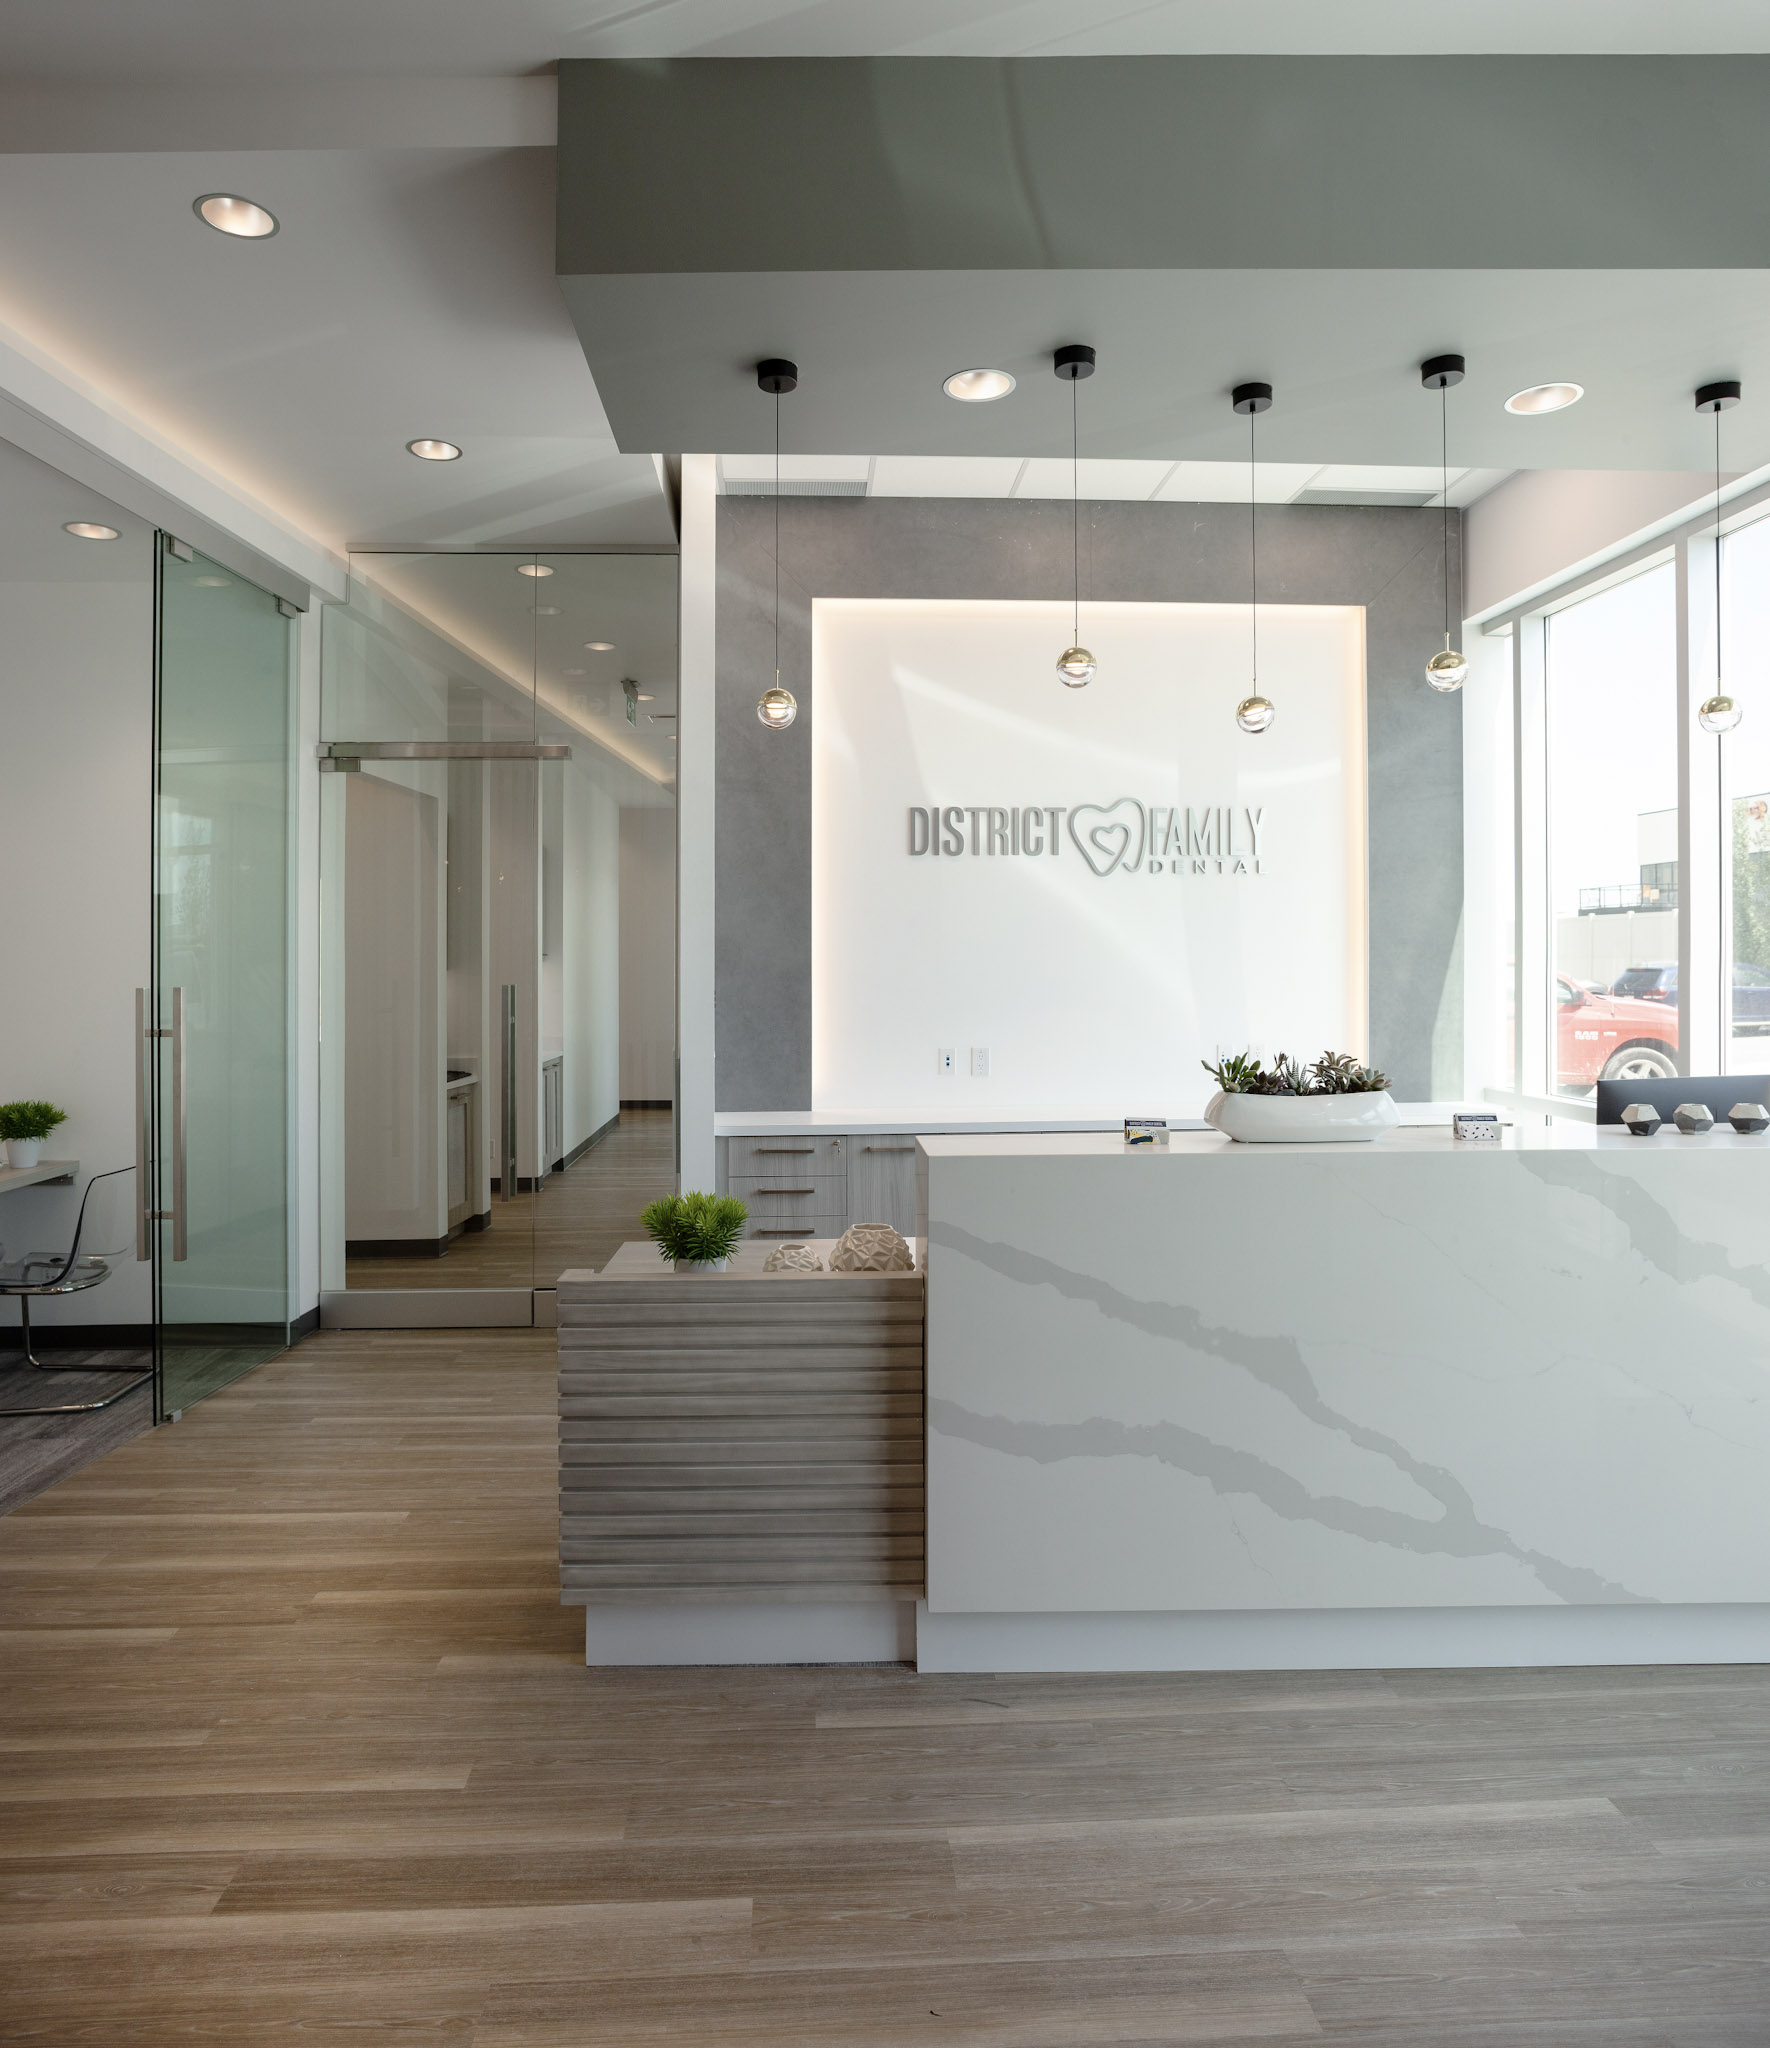 Family district dental Westrose Interiors